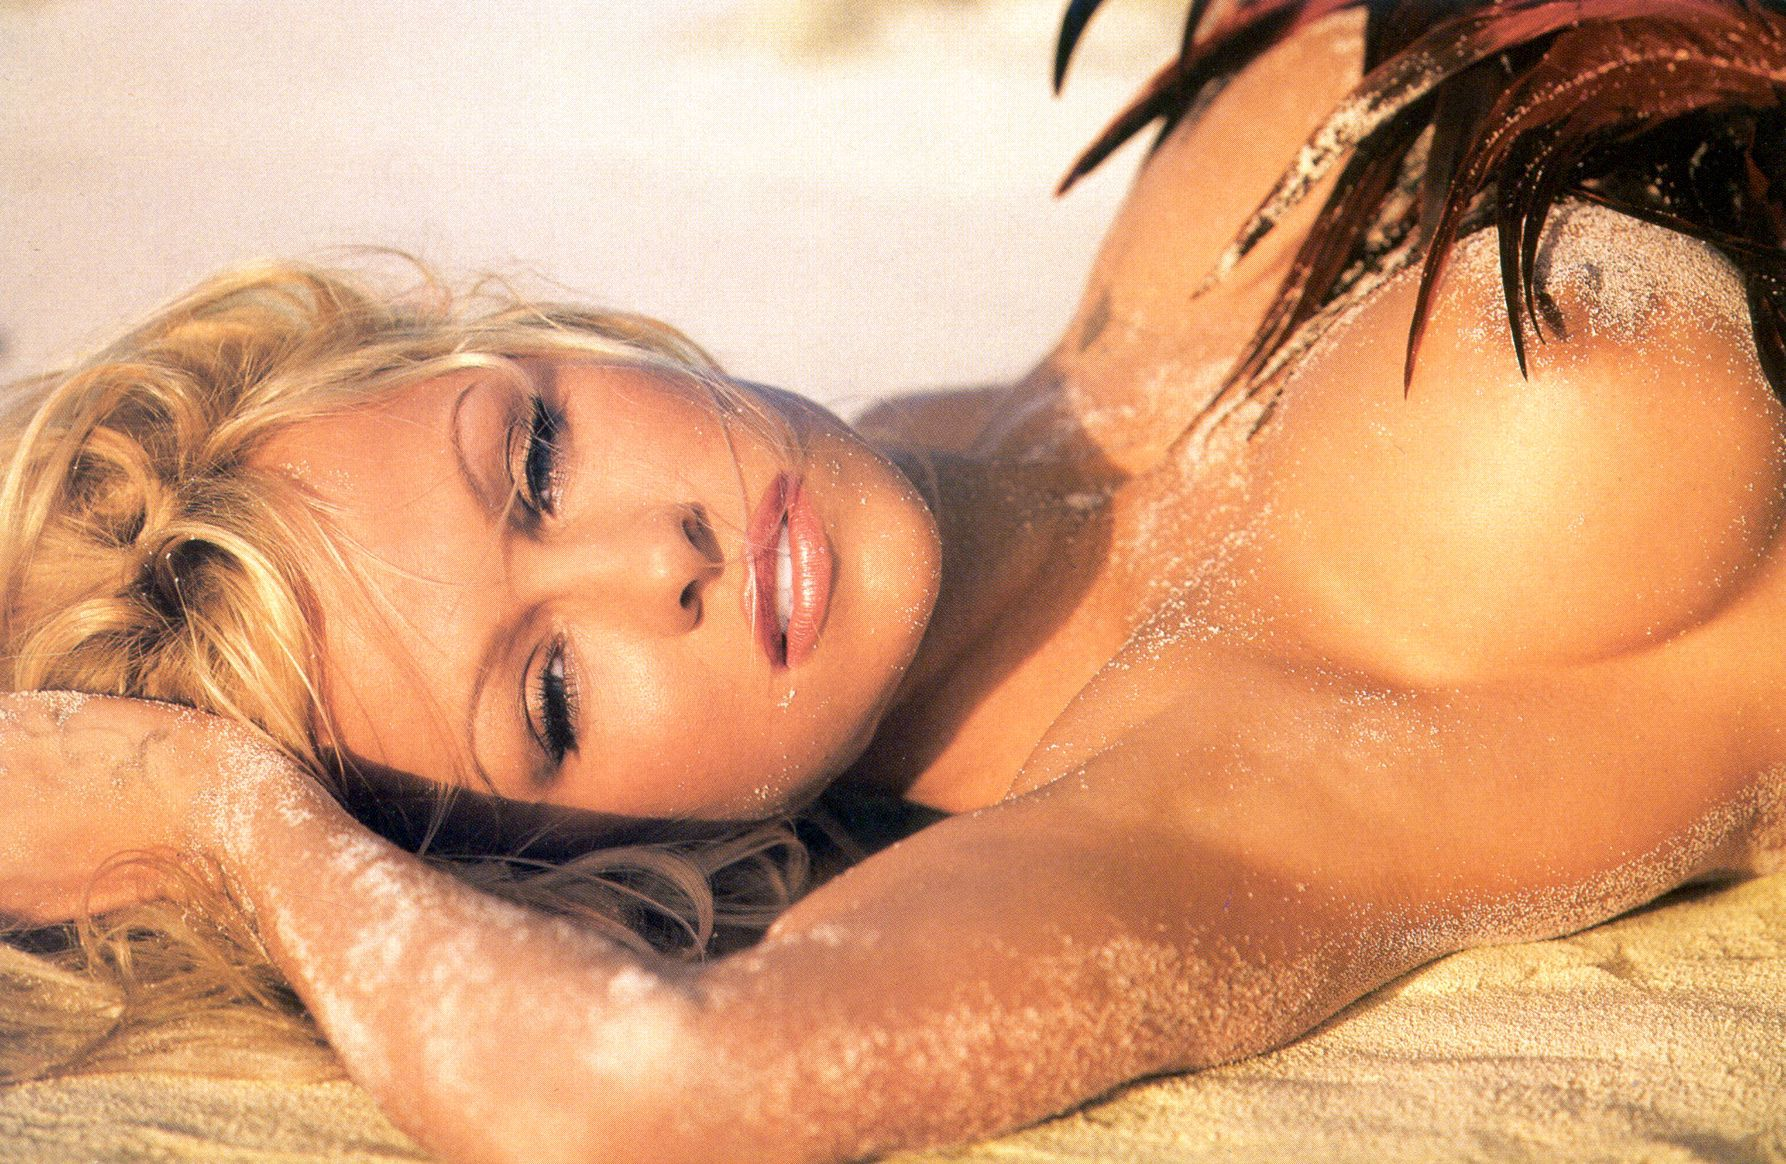 Teen pam anderson at topless beach sexy fucking girls